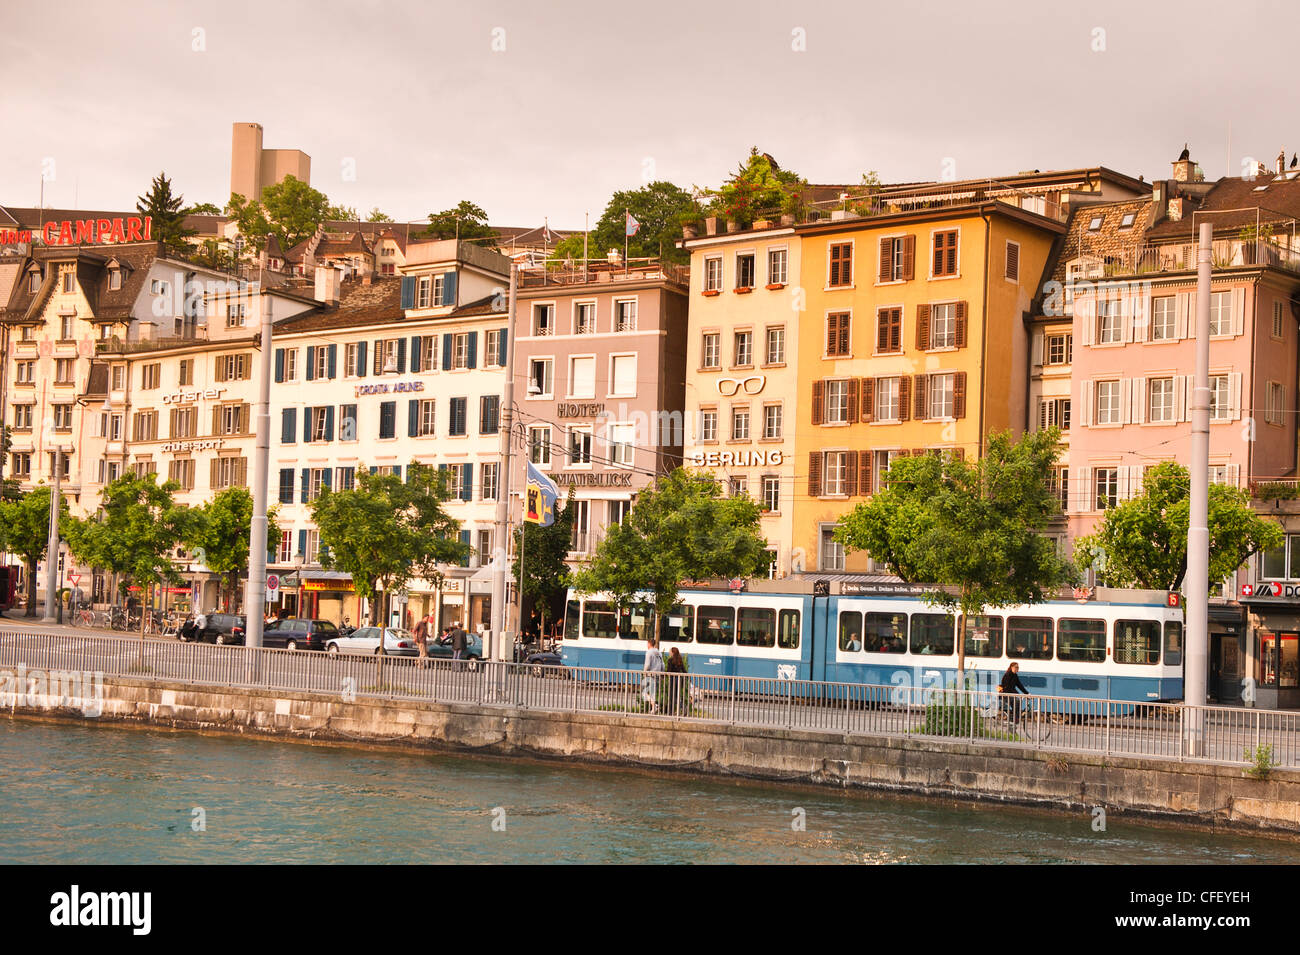 Buildings on the Limmat River, Old Town, Zurich, Switzerland, Europe - Stock Image